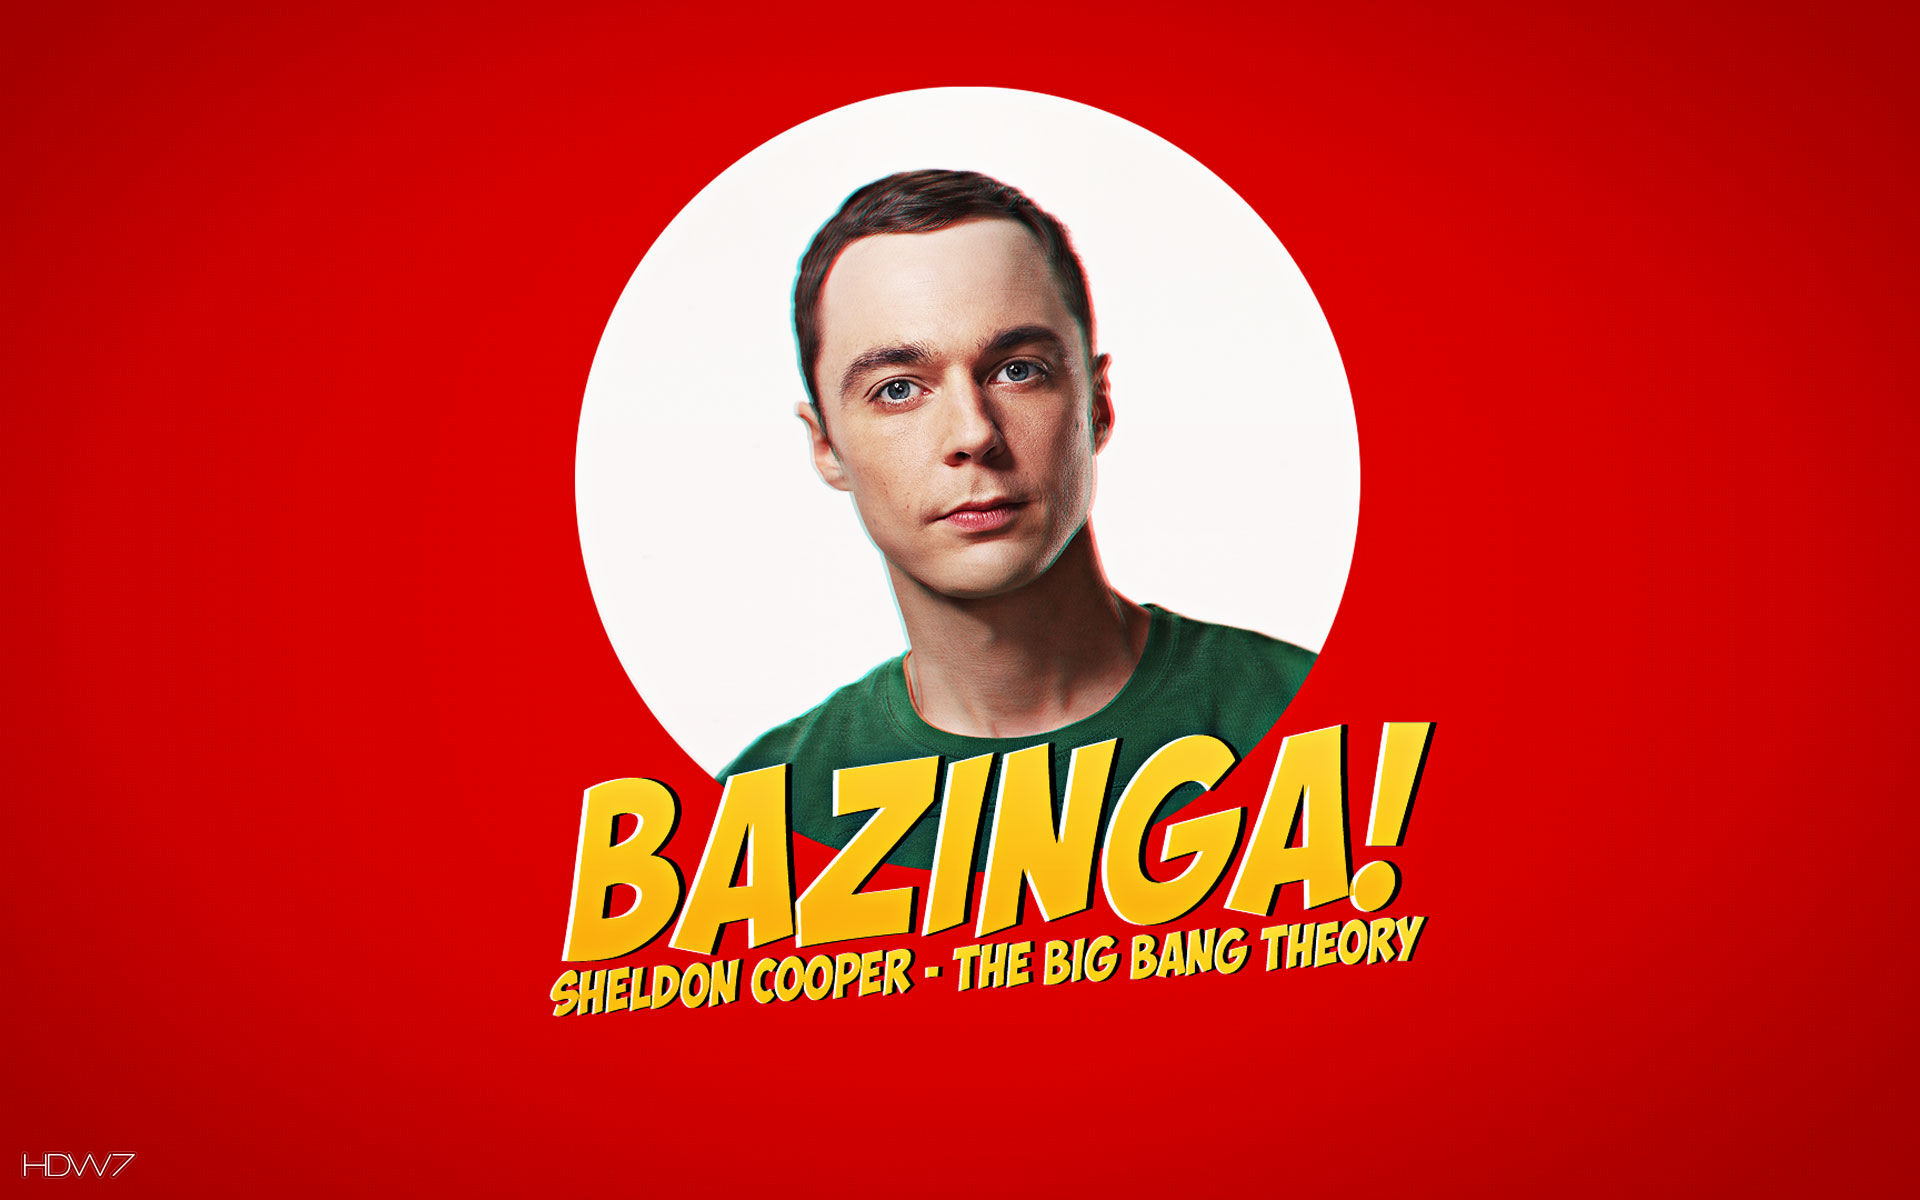 sheldon cooper bazinga wallpaper